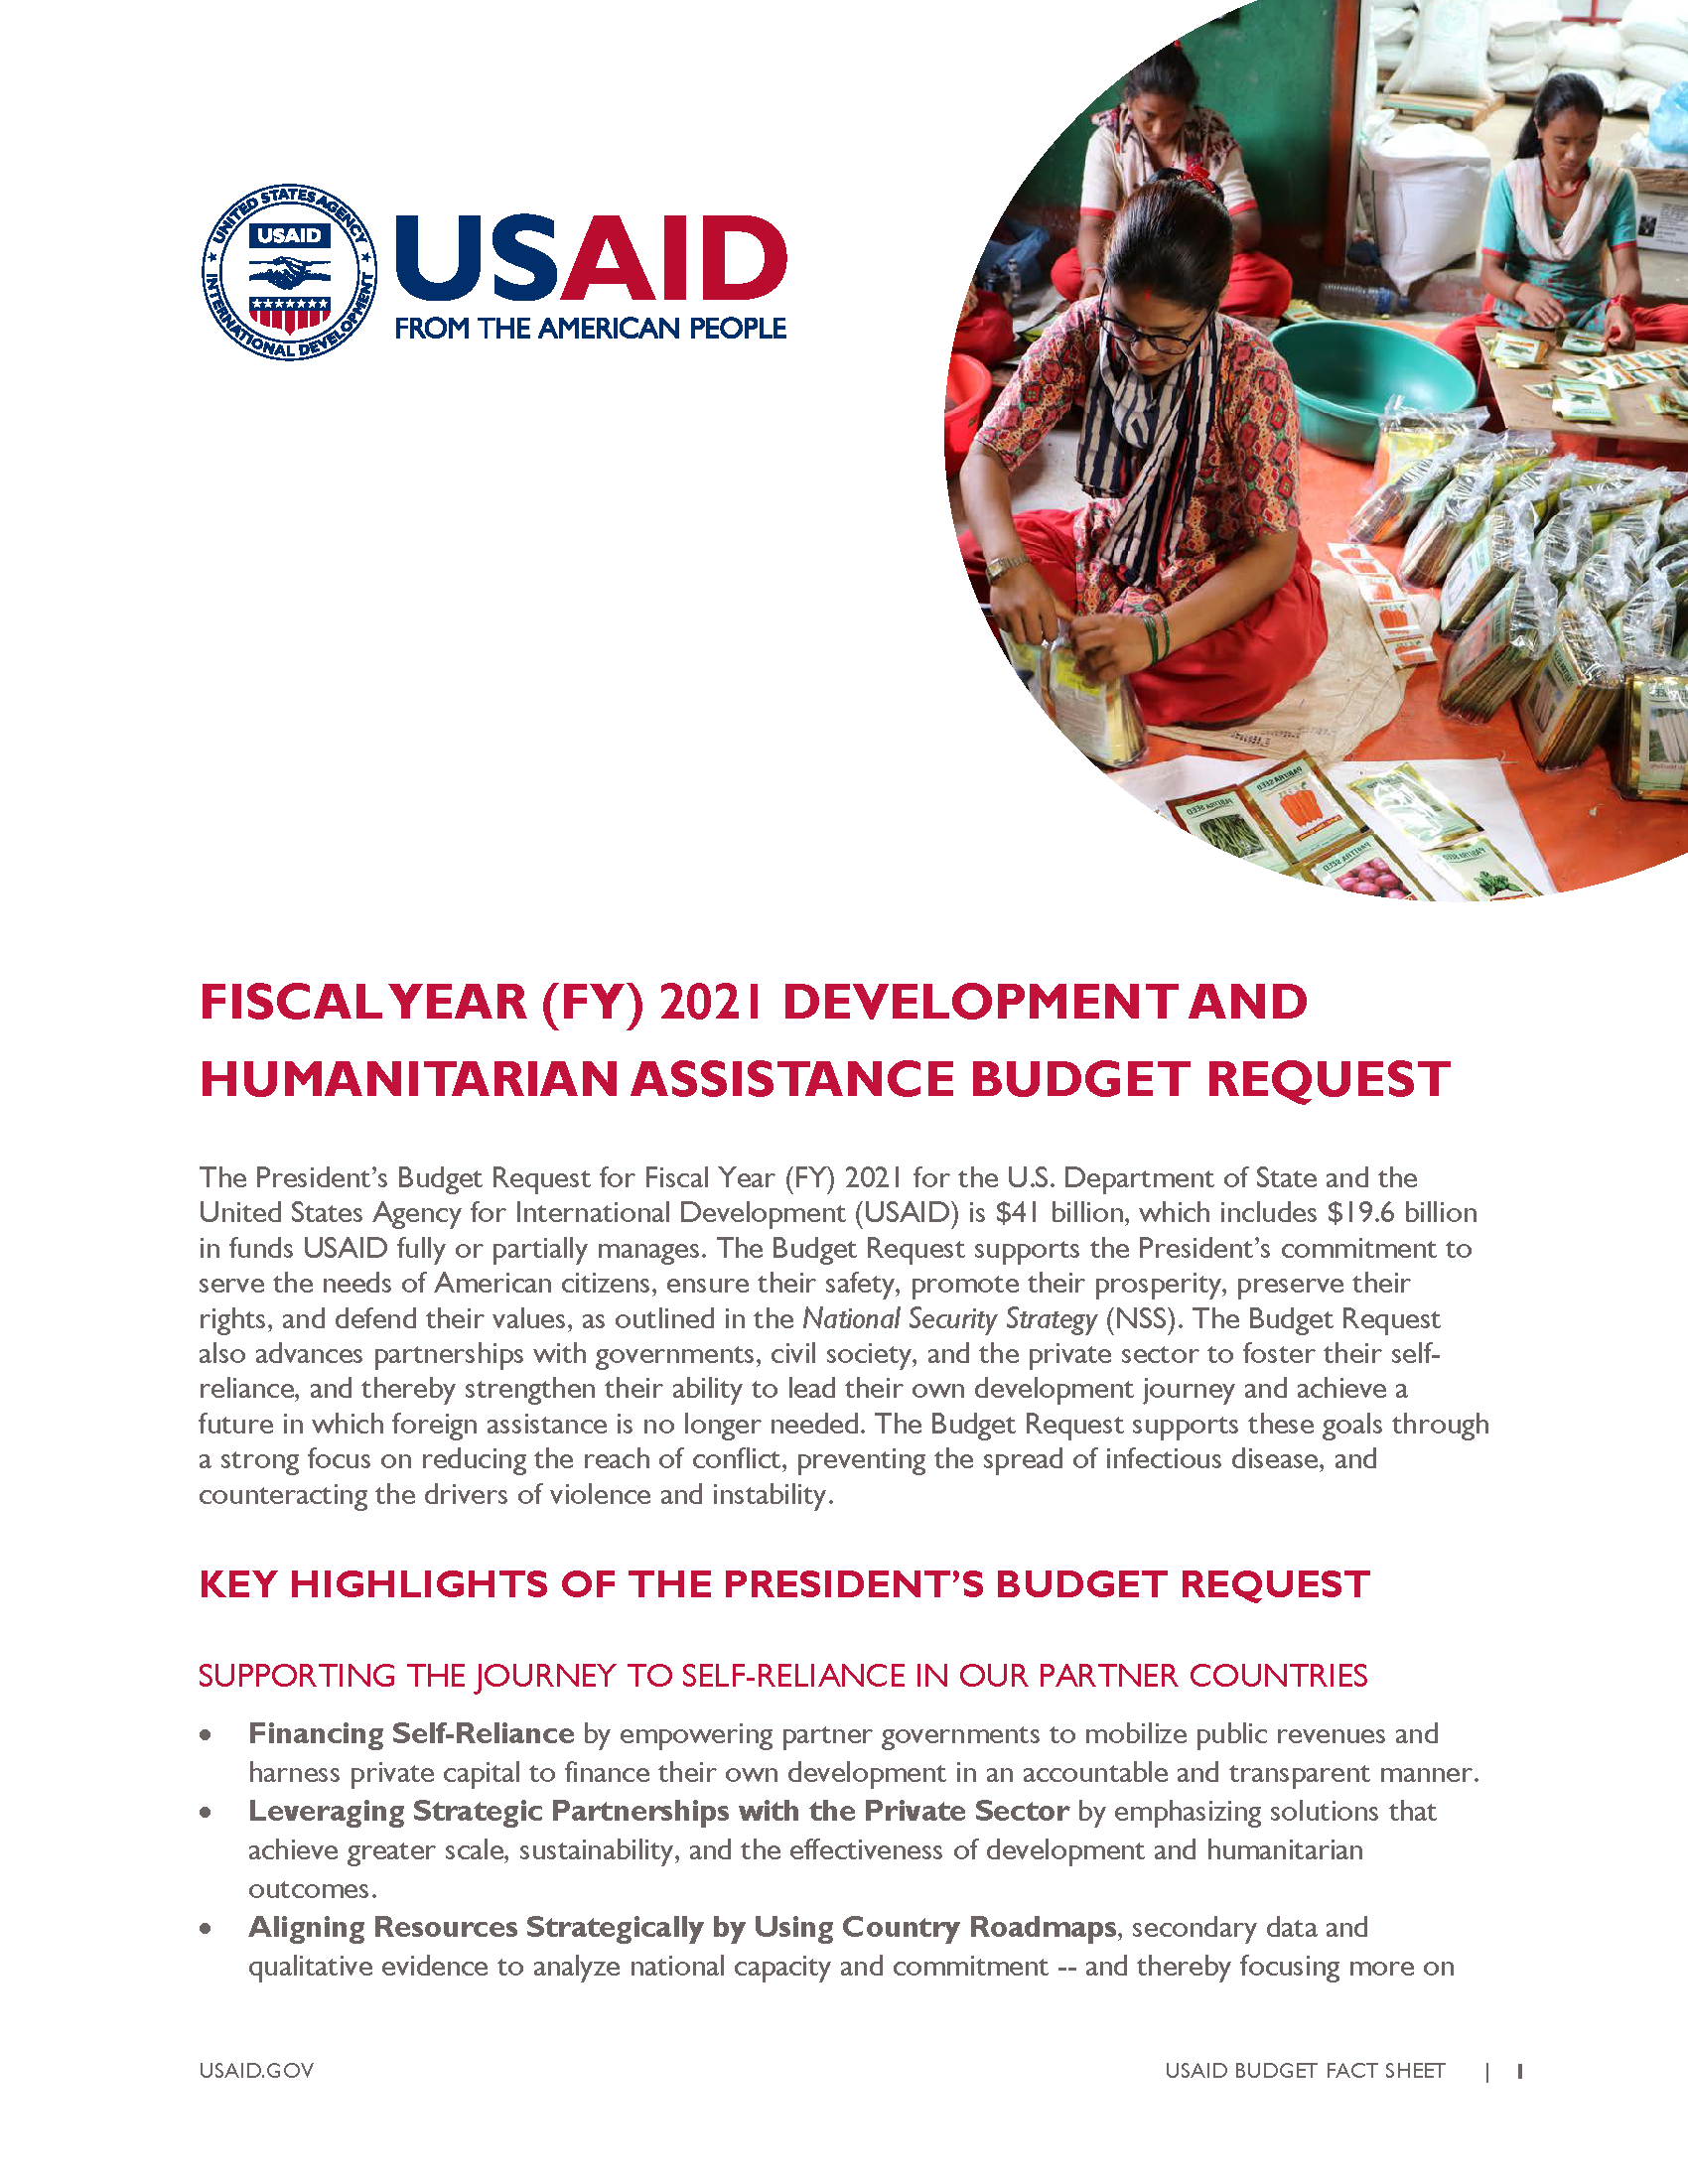 Fact Sheet: Fiscal Year (FY) 2021 Development and Humanitarian Assistance Budget